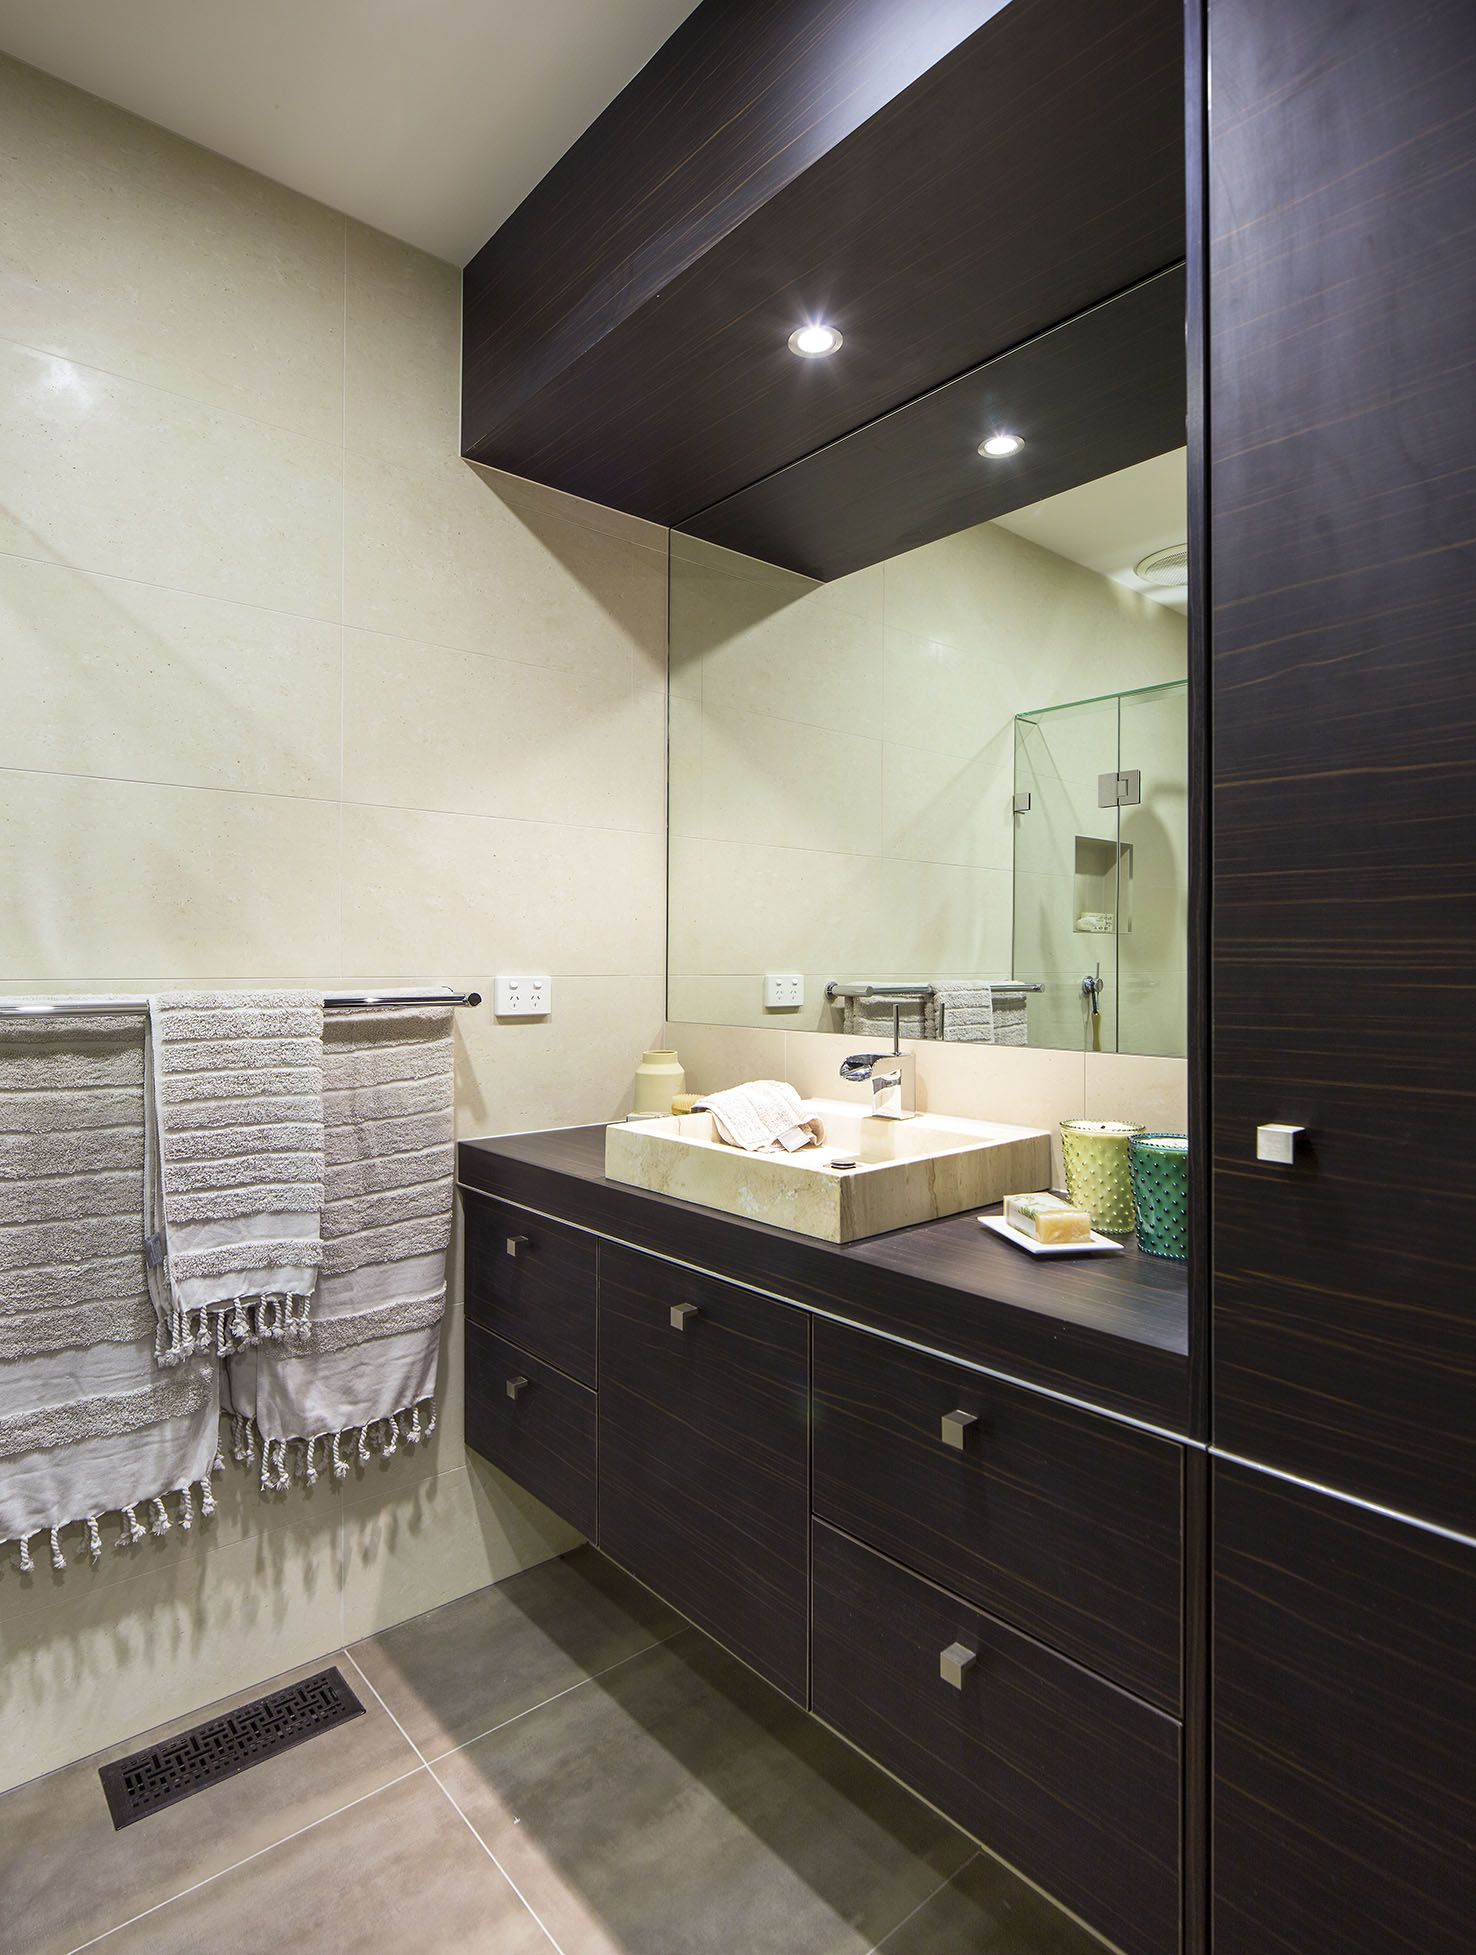 get custom bathroom renovation done in melbourne on bathroom renovation ideas melbourne id=54226